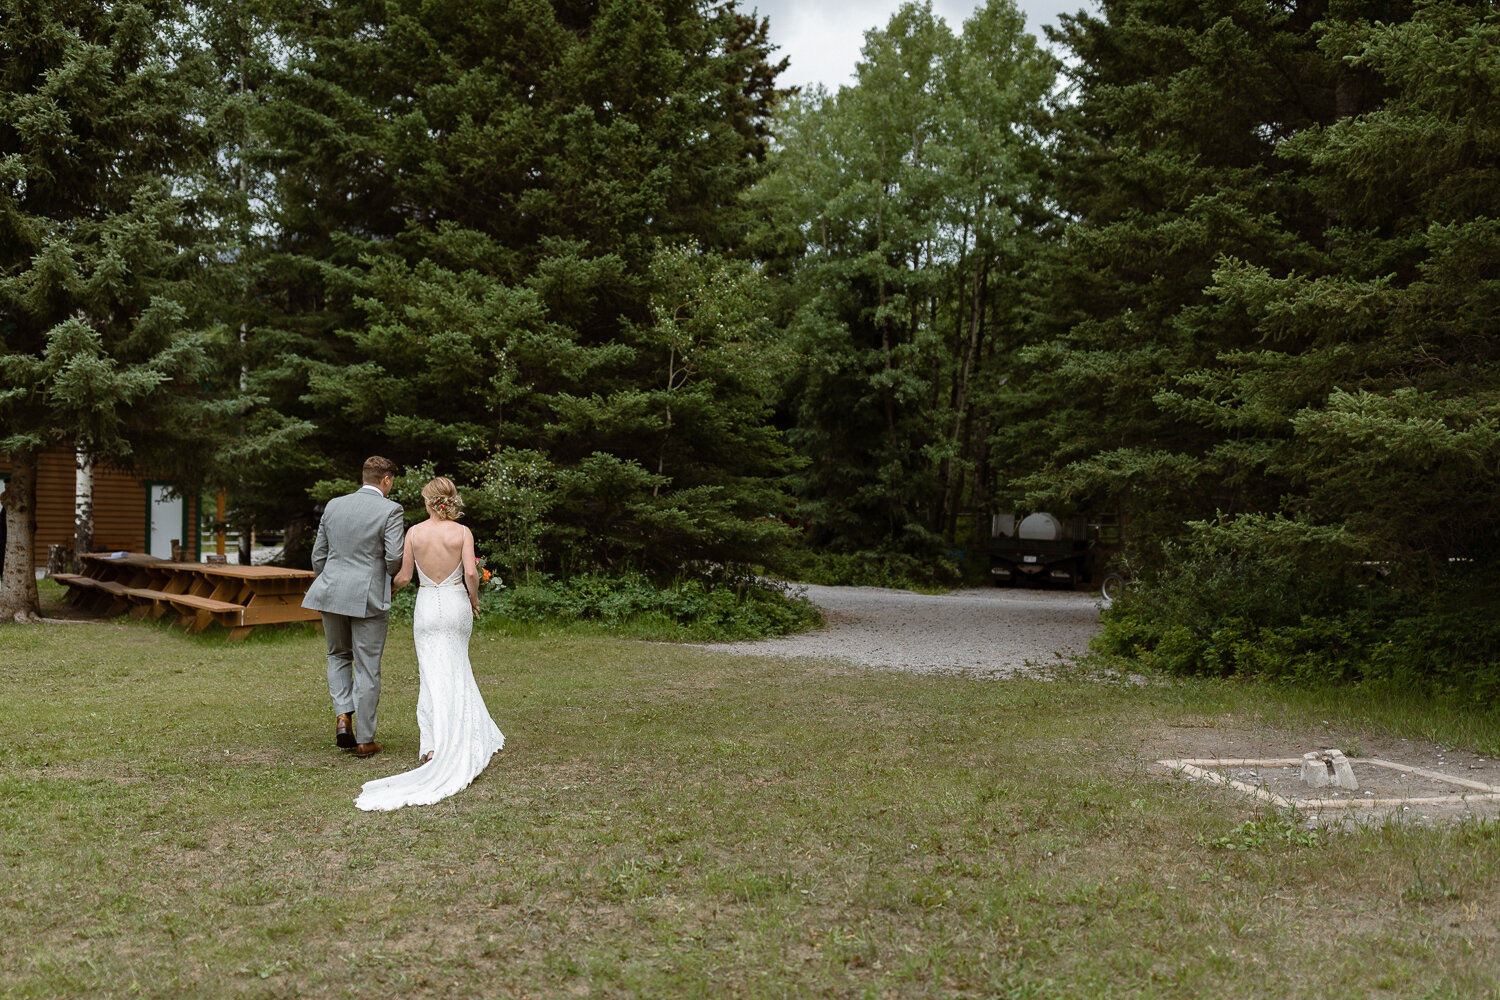 77-Canmore-Alberta-Real-Wedding-Best-Wedding-Photographers-112.JPG